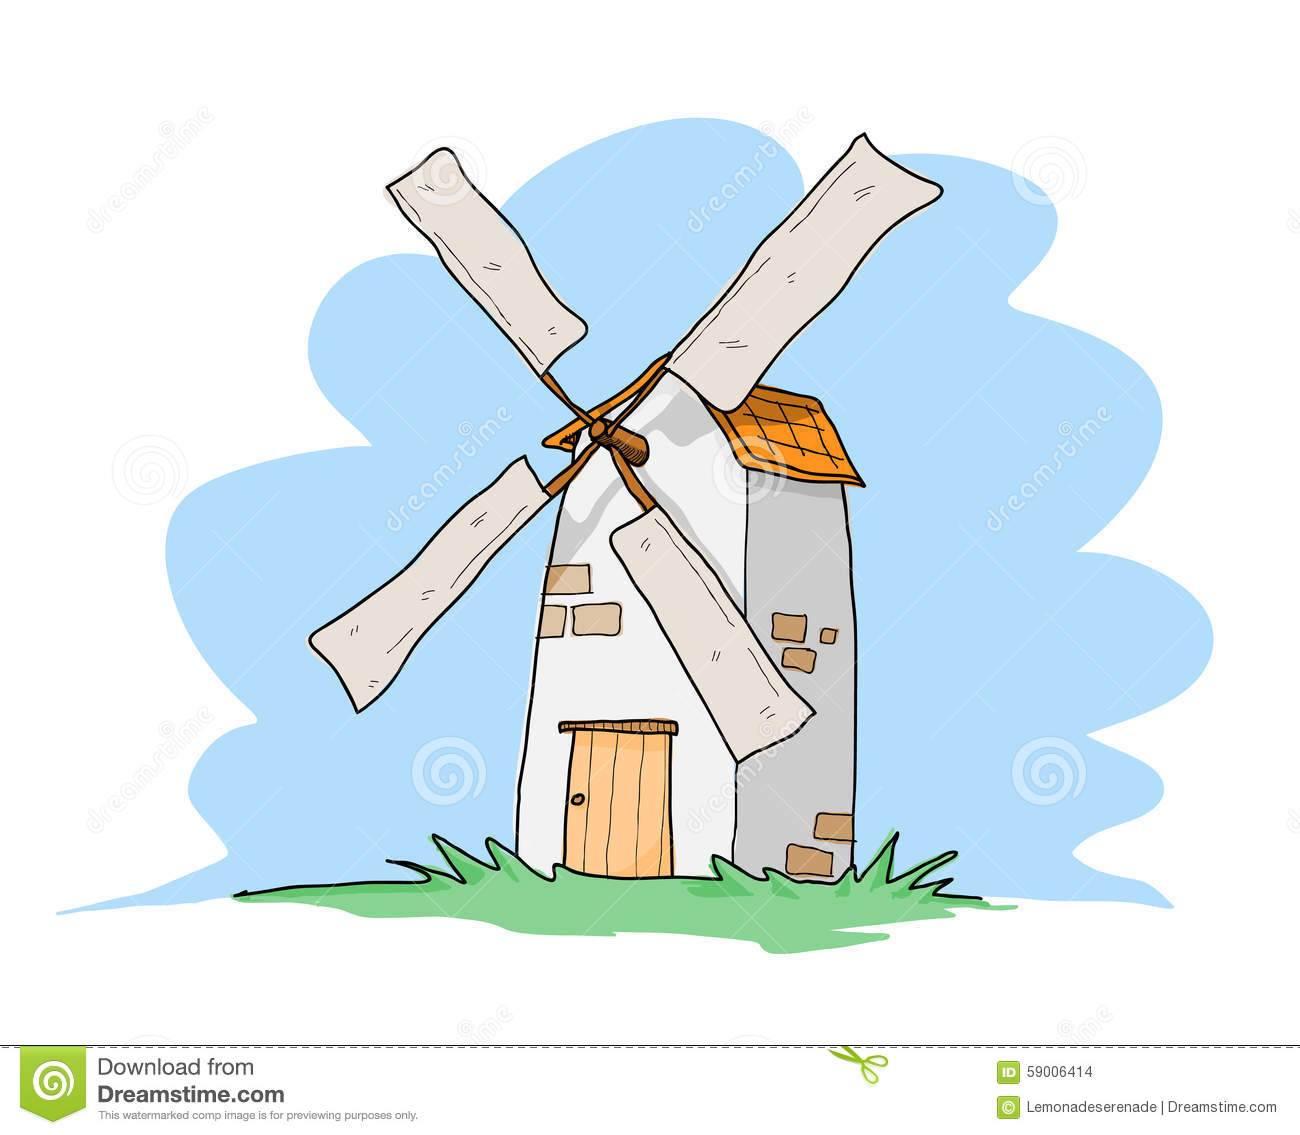 hand drawn vector illustration of a Windmill, isolated on a simple ...